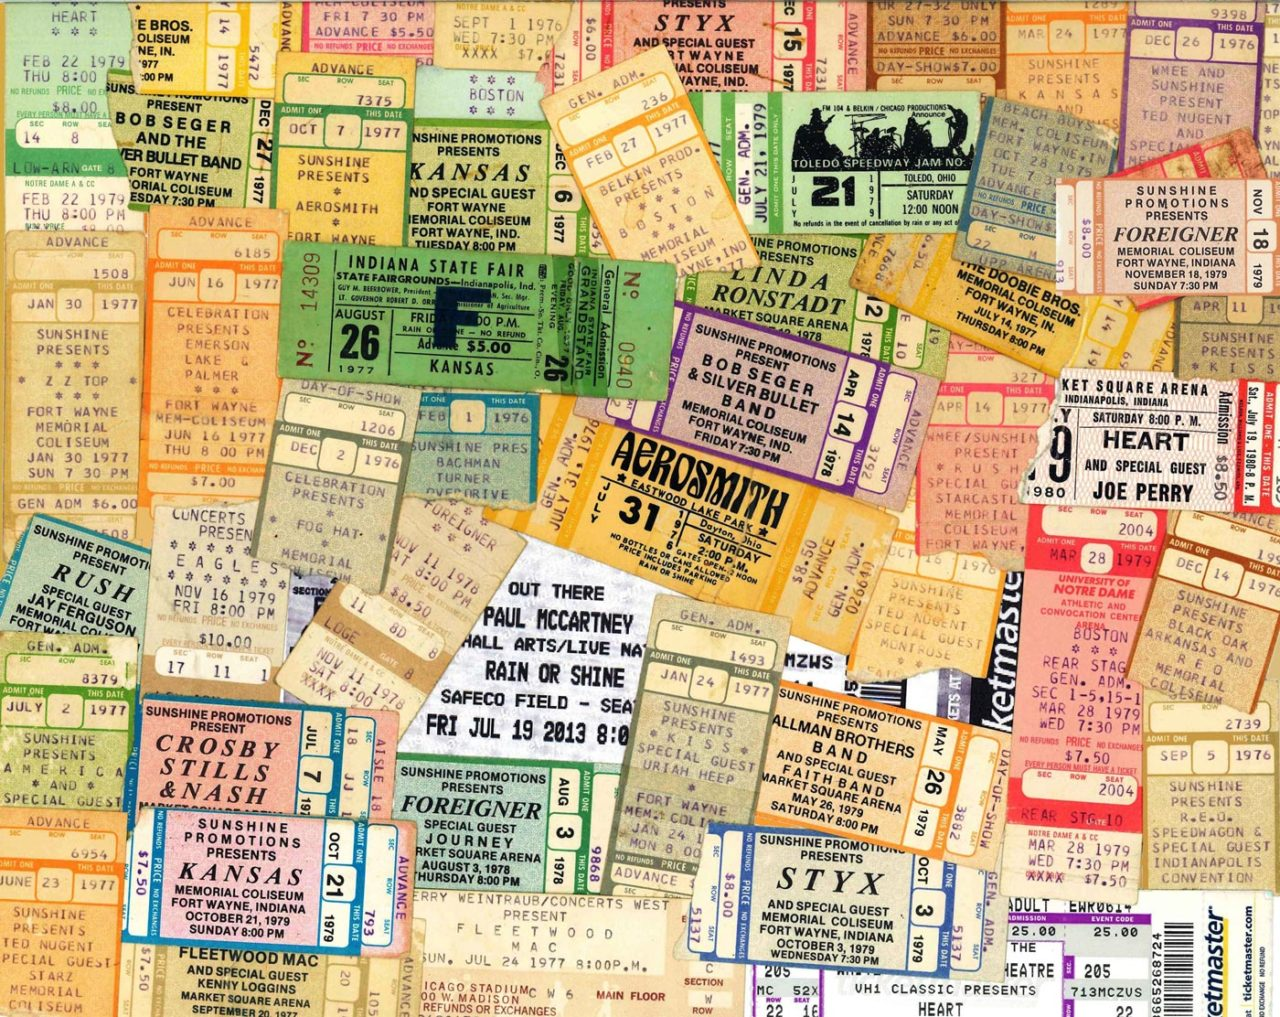 https://thesubmarine.it/wp-content/uploads/2016/11/background-concert-ticket-stubs-1-1280x1017.jpg